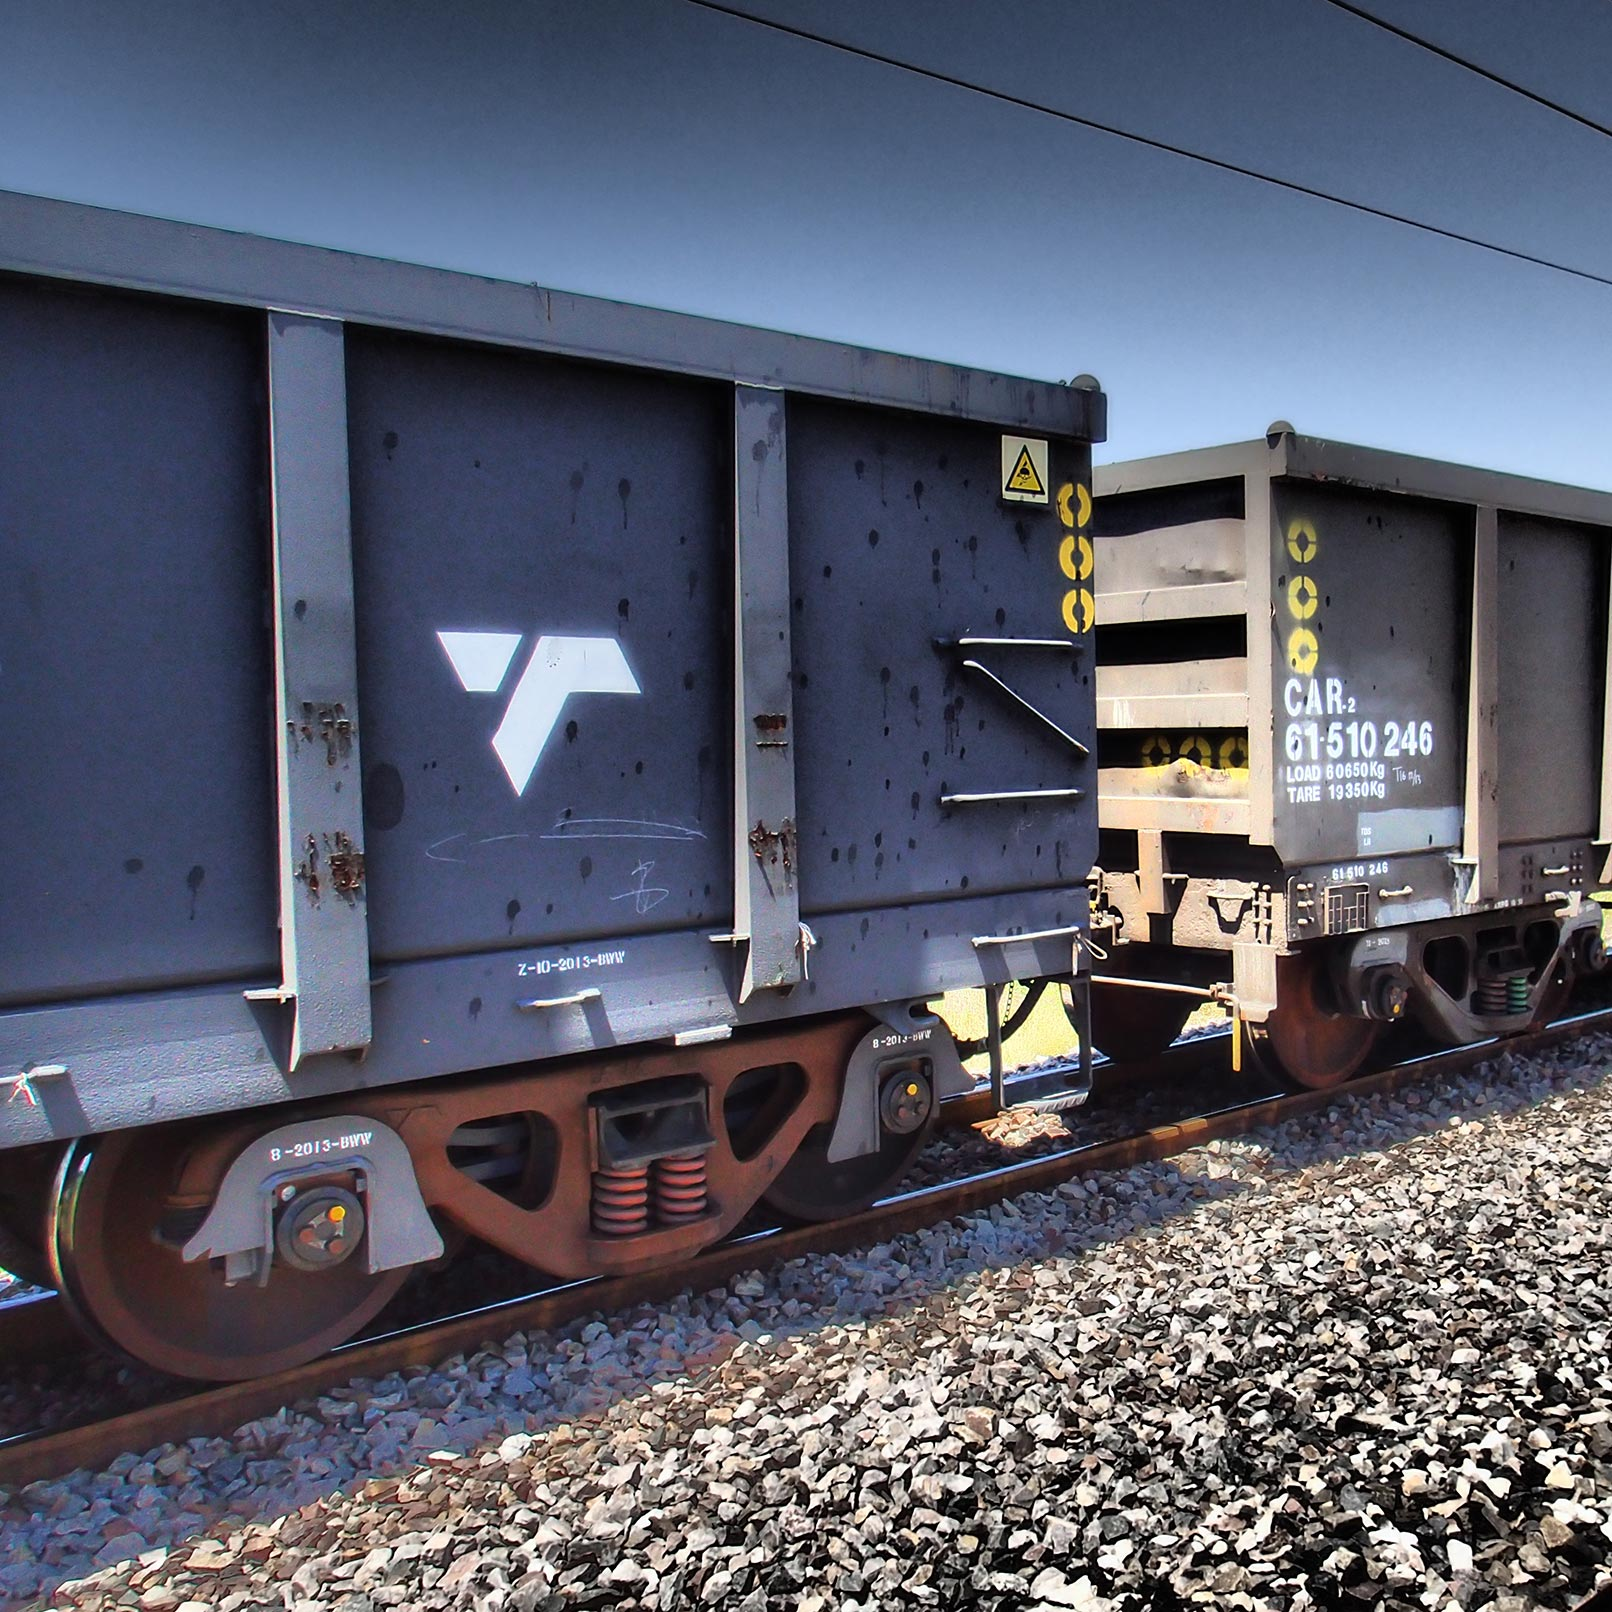 Picture of Transnet Freight Rail Operations